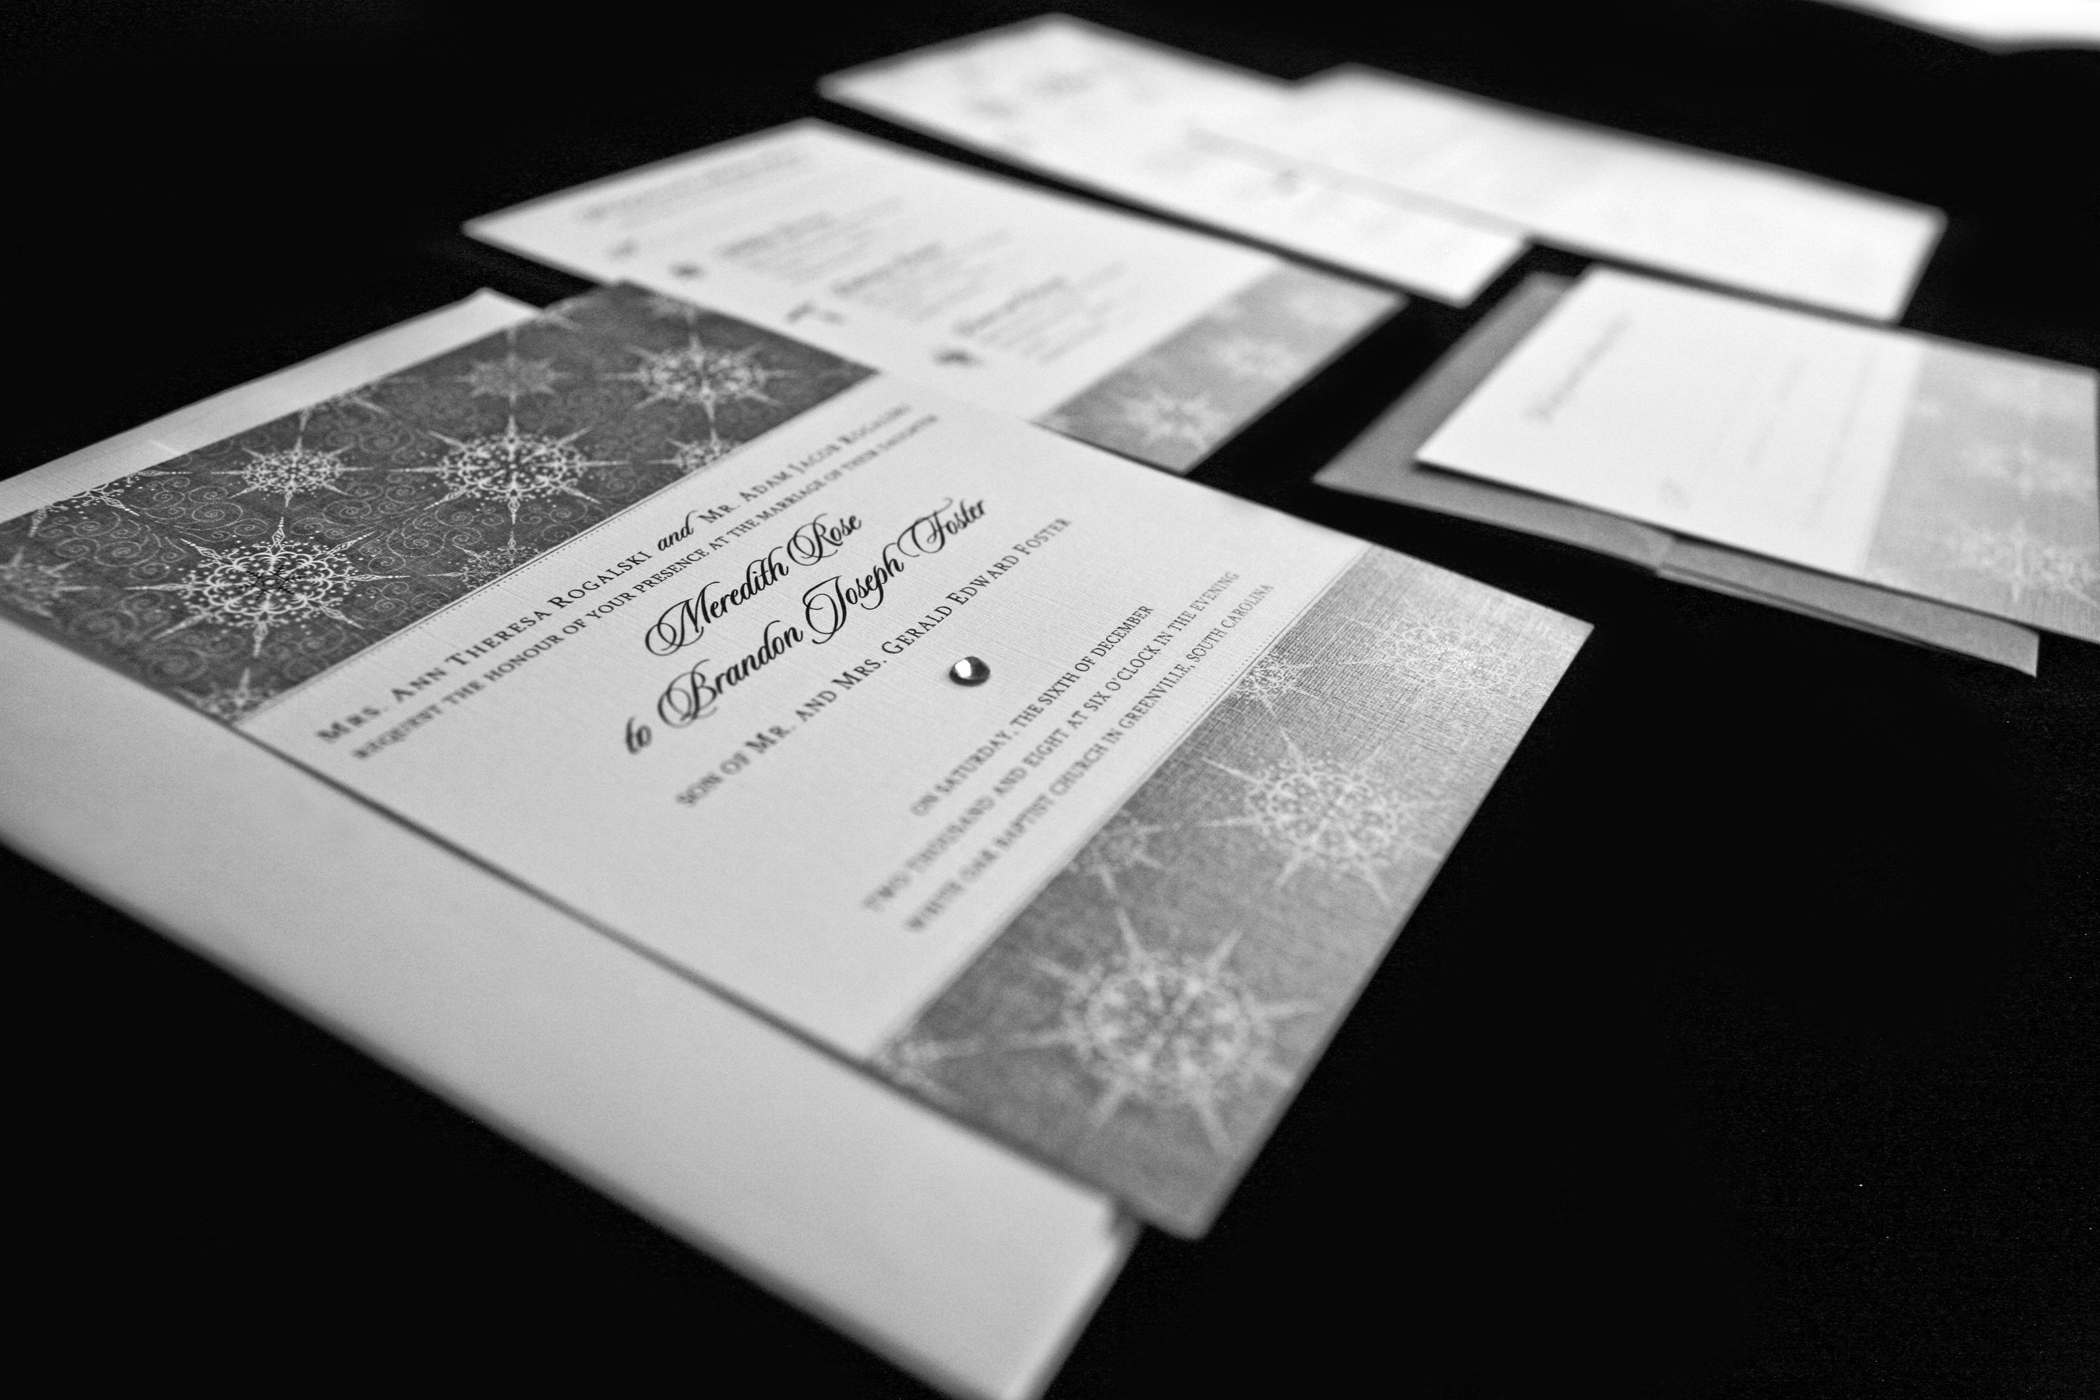 Stationery, white, black, invitation, Winter, Invitations, Menu, Wedding, Crystal, Swarovski, Beautiful, Card, Snow, Crystals, Snowflake, Snowy, Cold, Reply, Magical, December